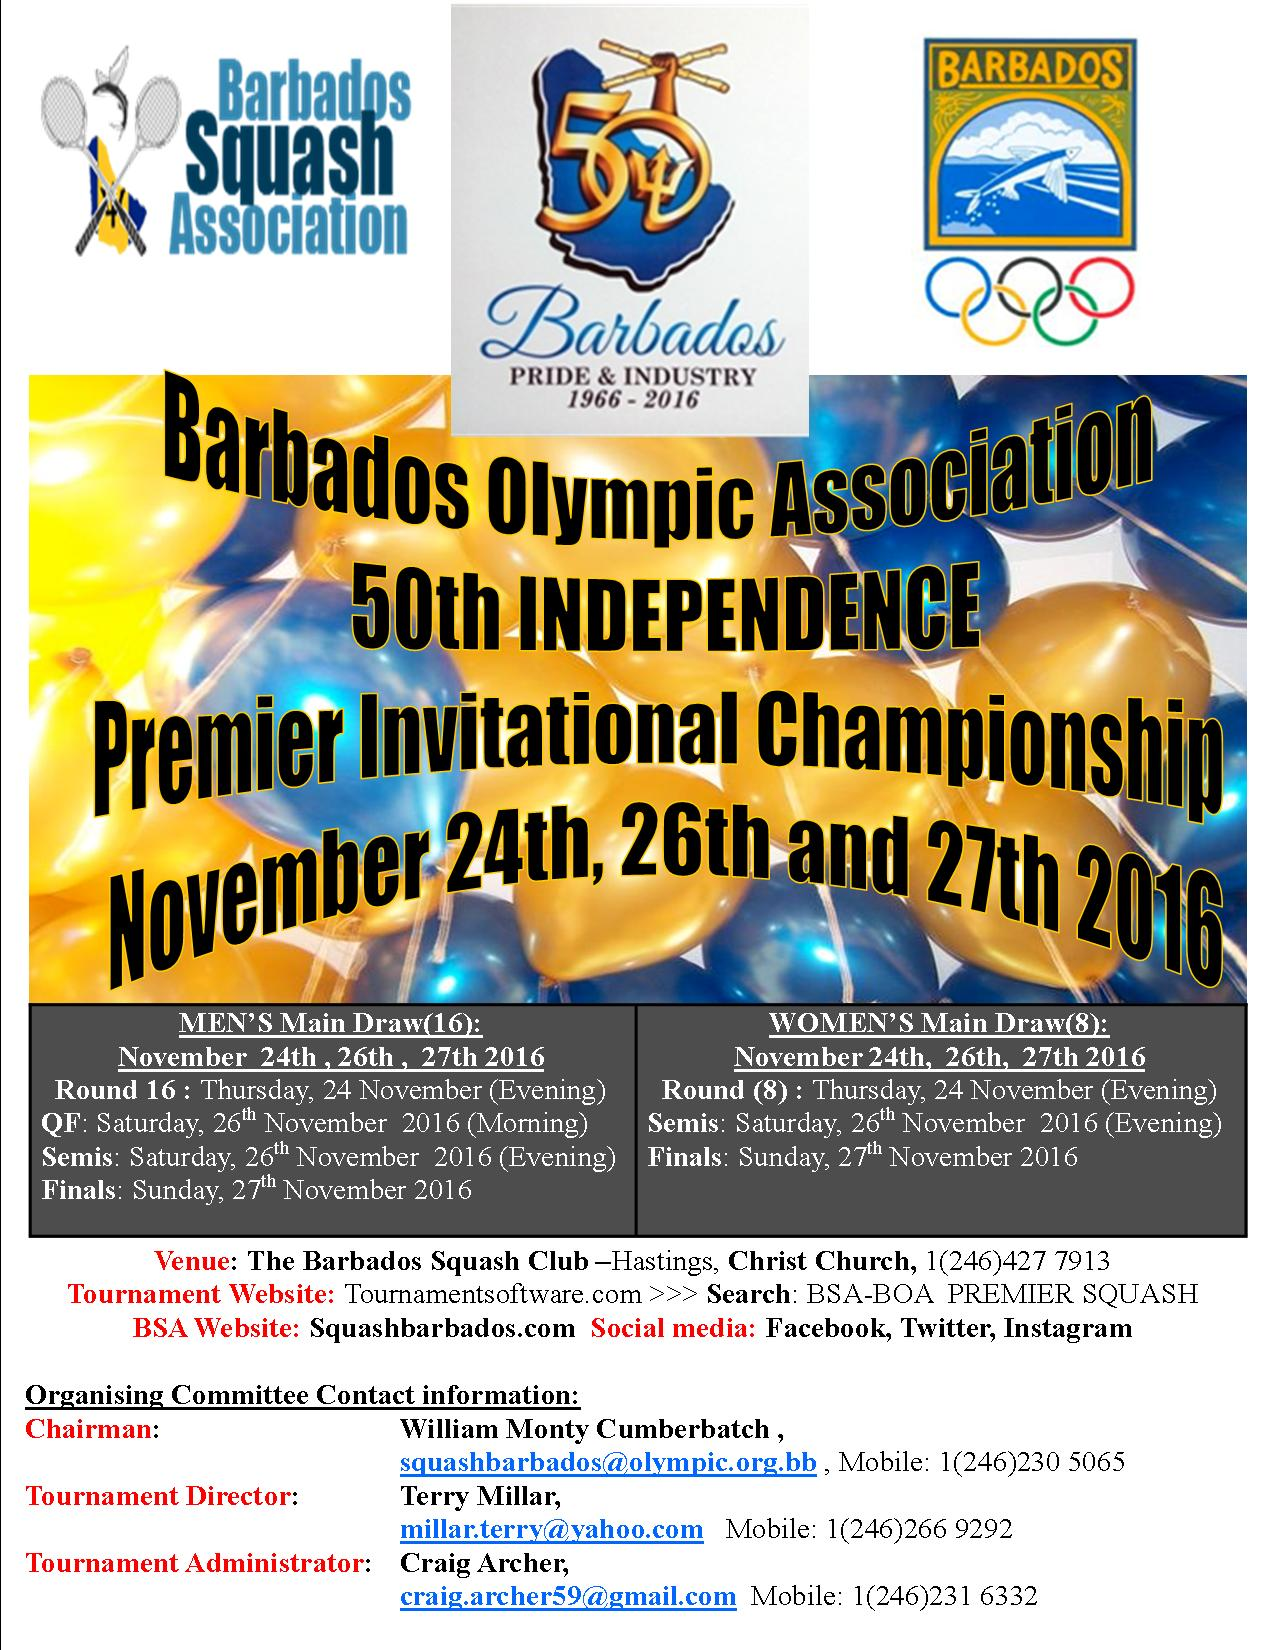 BSA In Conjunction With BOA To Host 50th Anniversary Premier Squash Championship